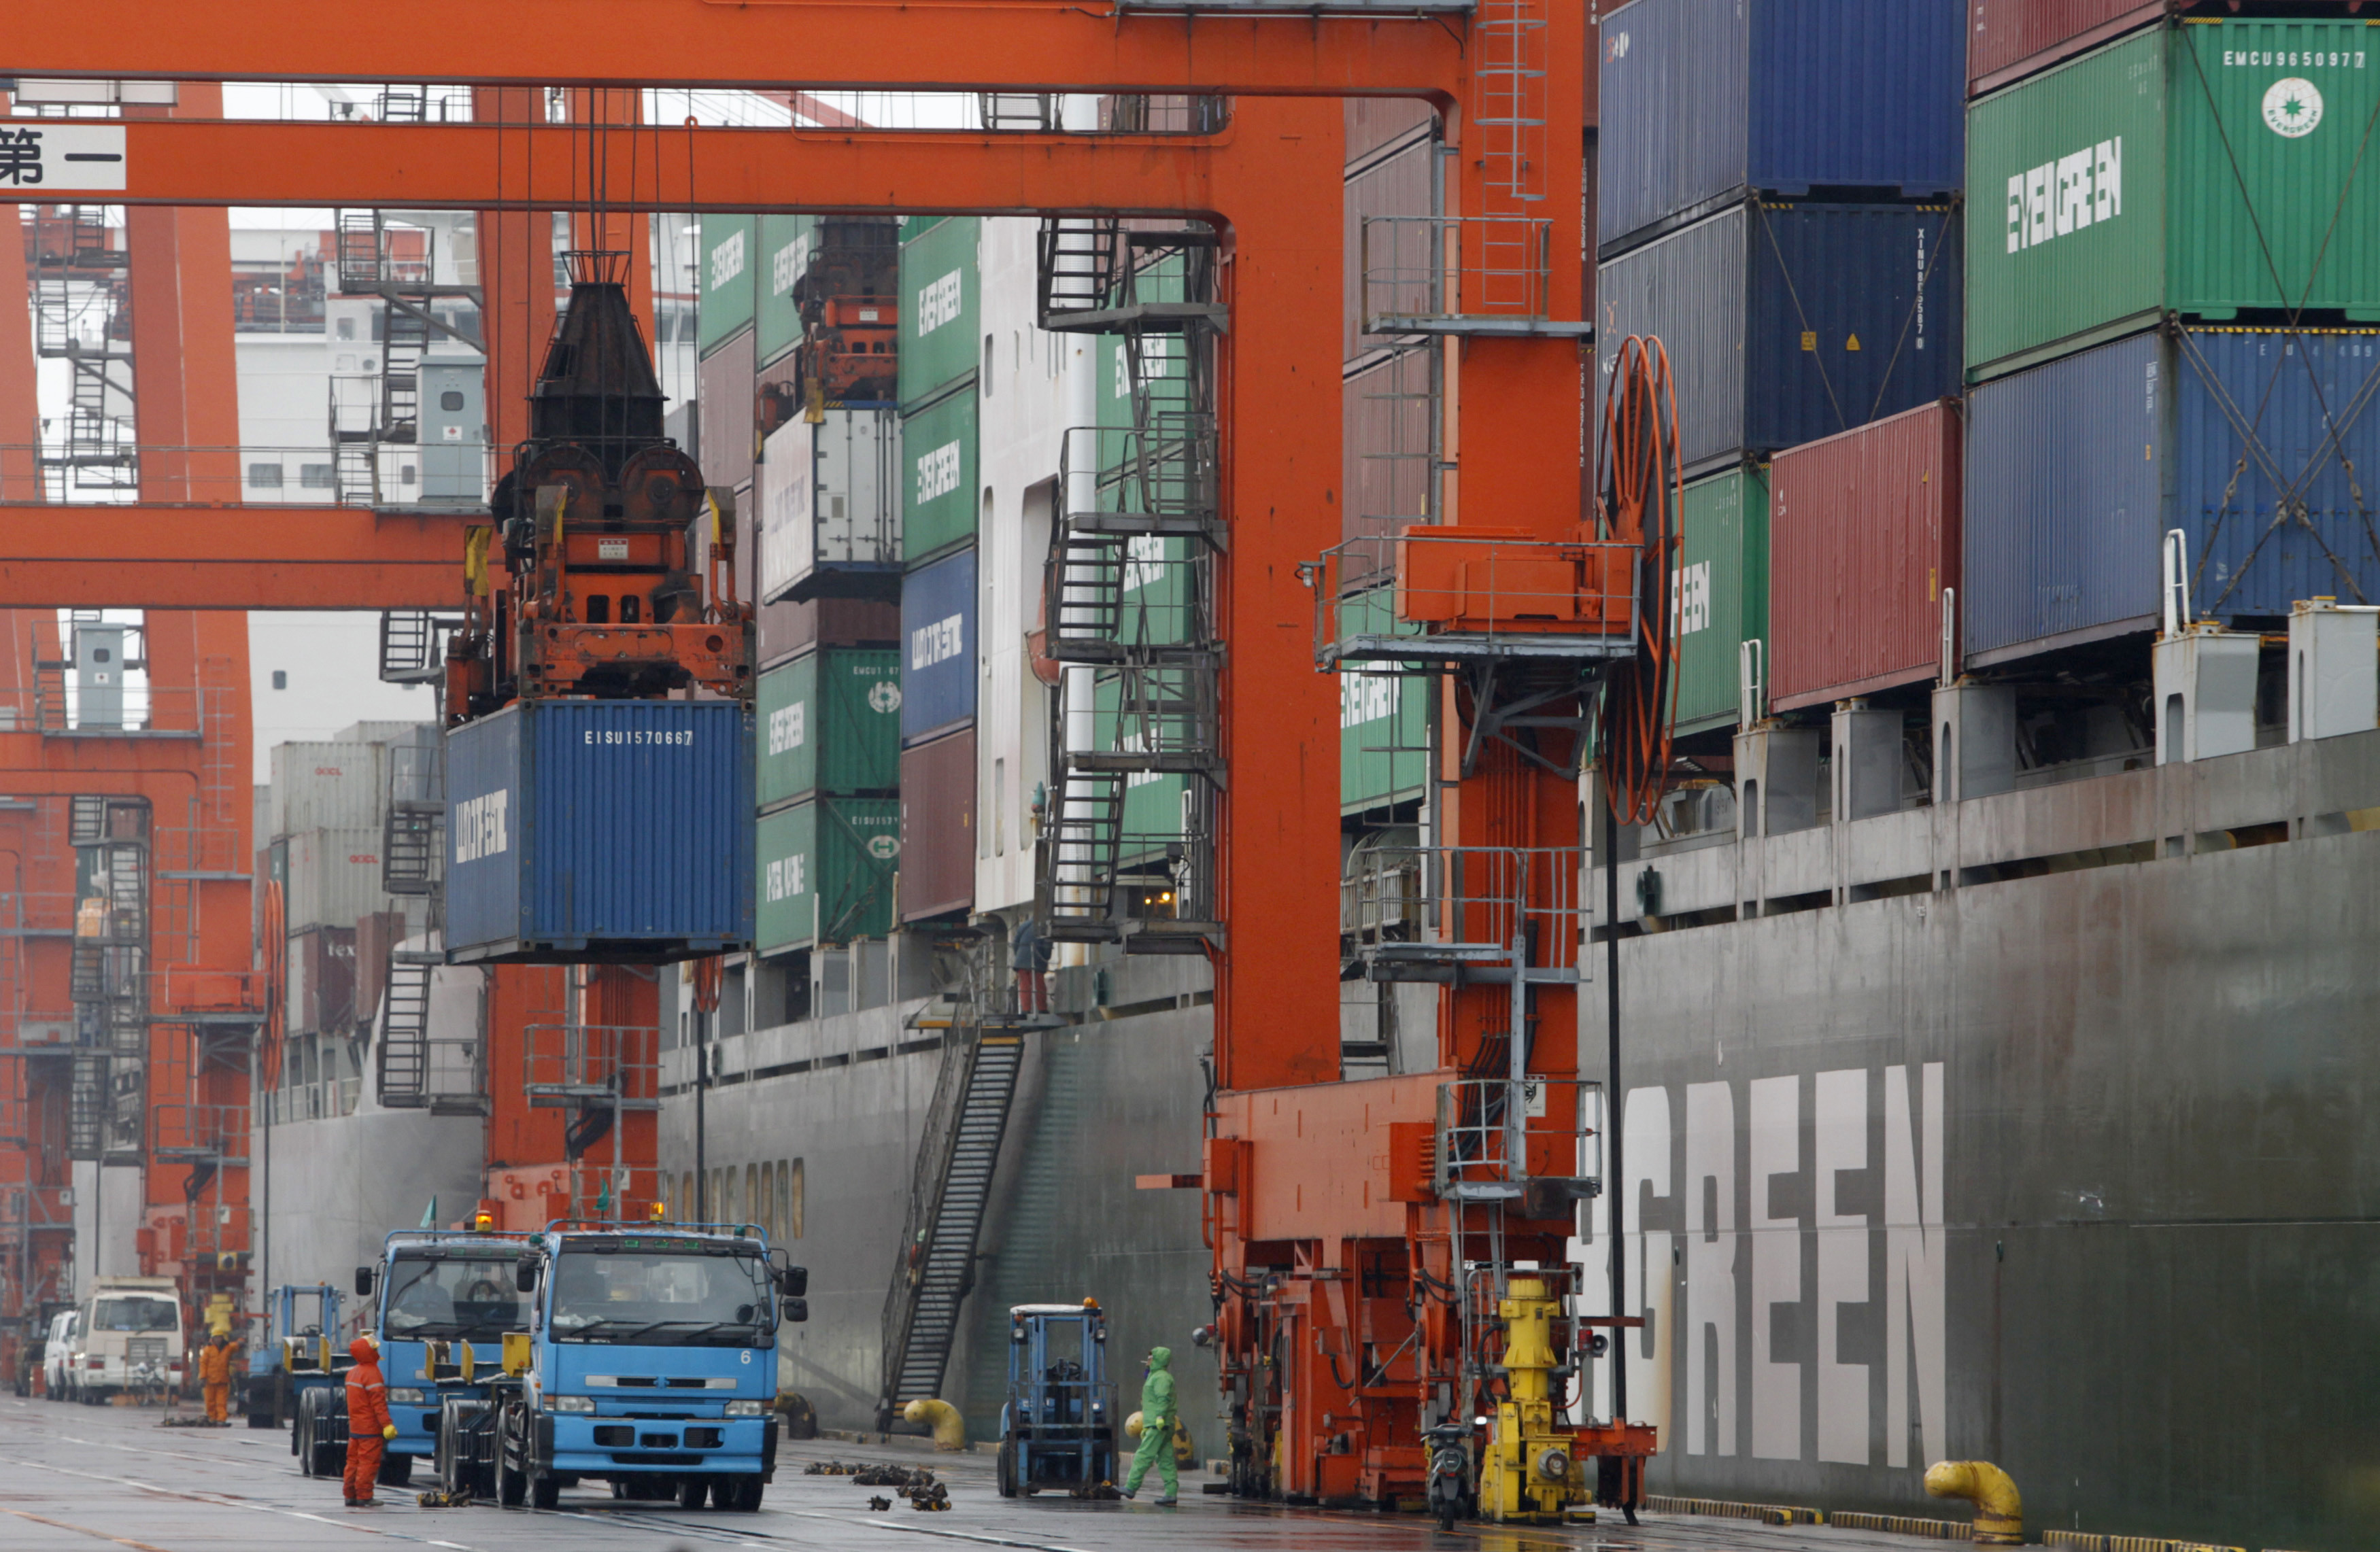 Workers load a cargo container on a truck at a pier in Tokyo March 24, 2010. Japan's exports fell in February from the previous month in a sign that a rebound in external demand could start to slow as the impact of subsidies and stimulus measures wane. REUTERS/Issei Kato (JAPAN - Tags: BUSINESS) - RTR2BZYB